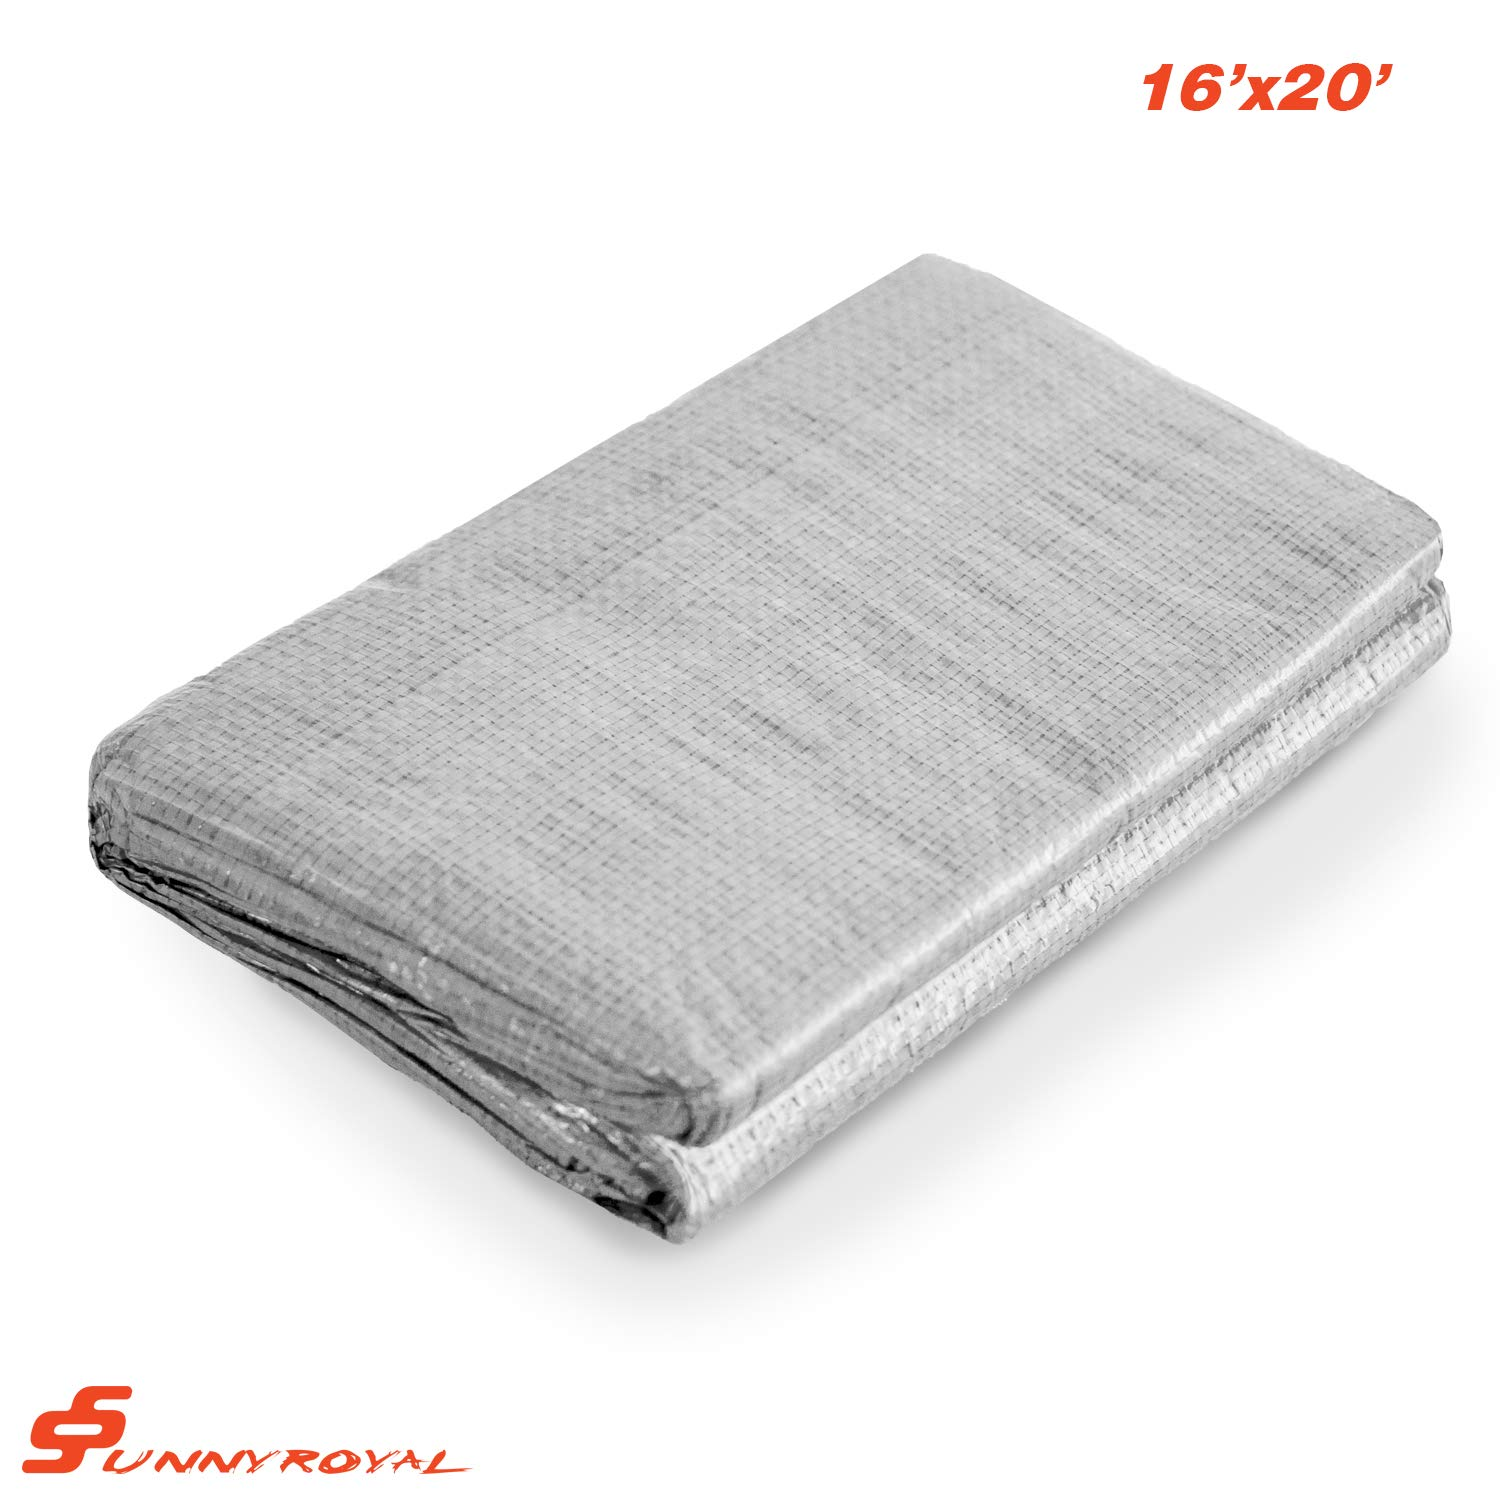 Silver SunnyRoyal 12 x 20 Tarp 10-mil Heavy Duty Thick Material UV Resistant Multi-Purpose Waterproof Reinforced Rip-Stop with Grommets for Tarpaulin Canopy Tent Boat RV or Pool Cover